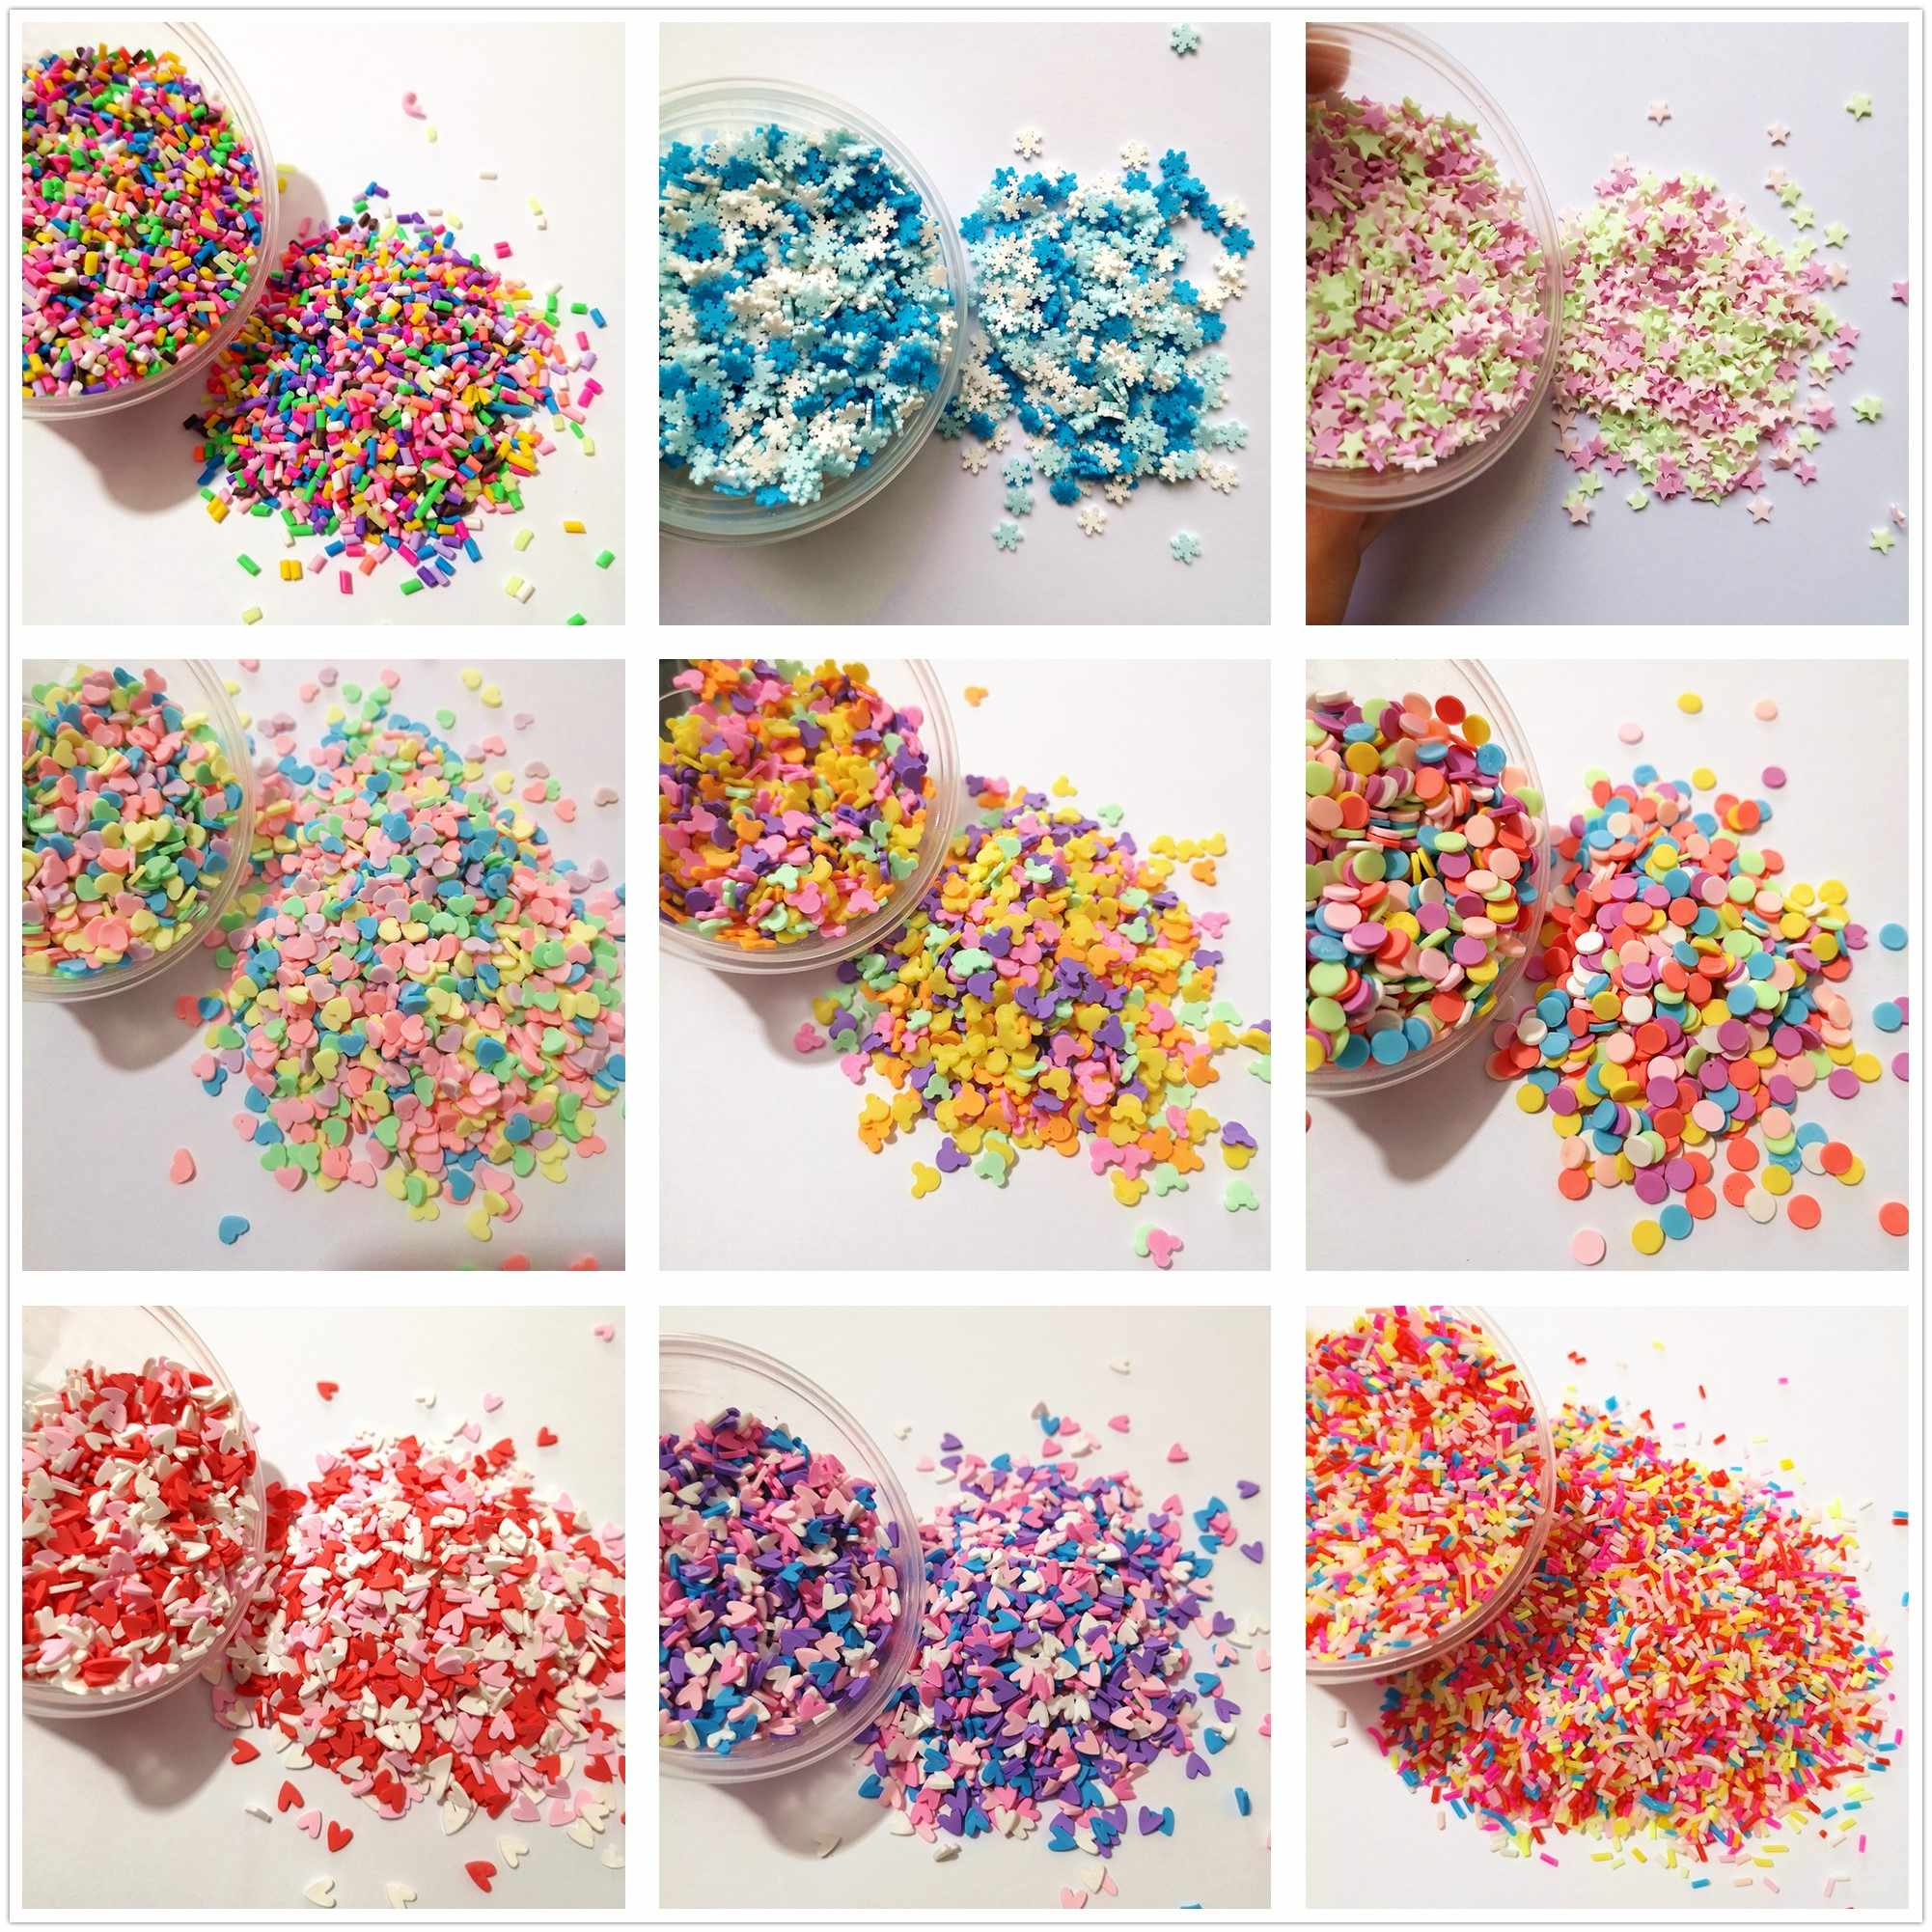 100g/bag Slime Clay Sprinkles Filler Toys Accessories Candy Fake Cake Dessert Mud Decoration